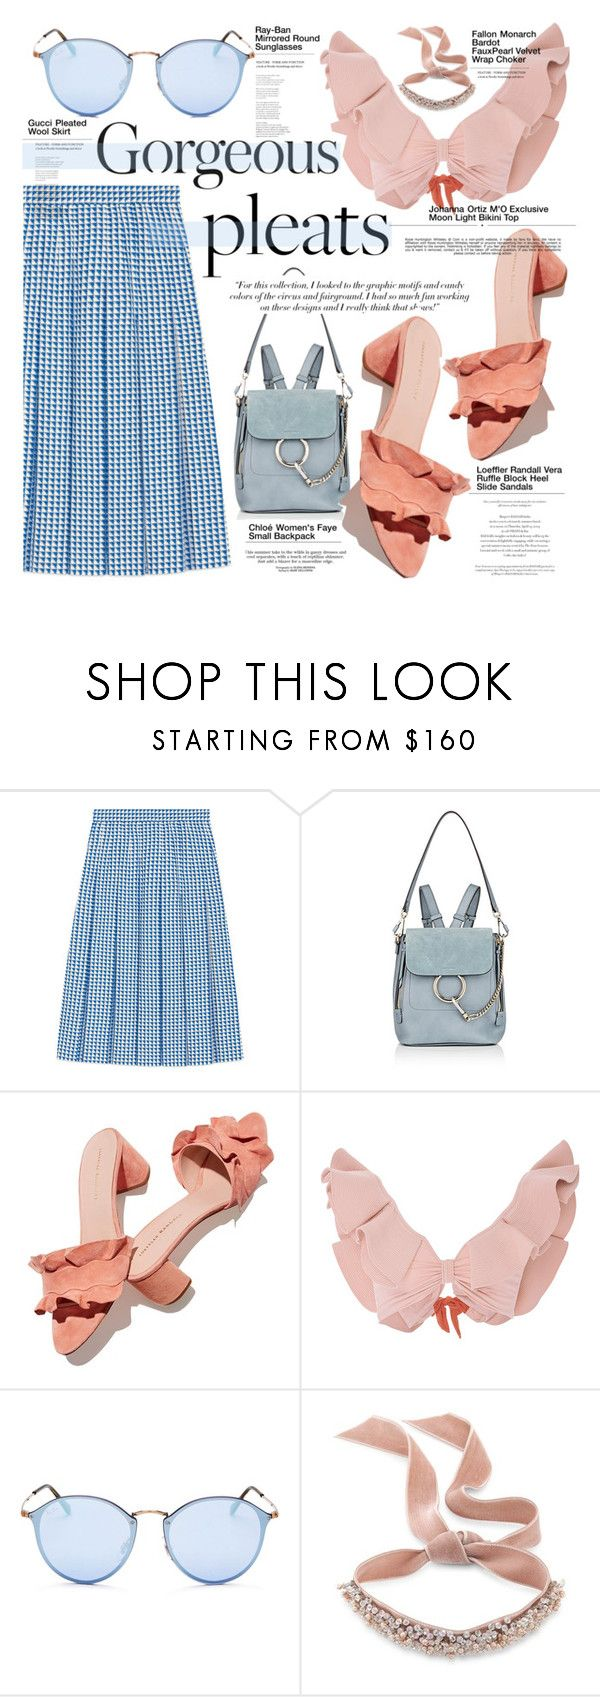 """Pleats"" by merrygorounds ❤ liked on Polyvore featuring Gucci, Chloé, Victoria Beckham, Loeffler Randall, Johanna Ortiz, Ray-Ban, Baku, Whiteley, Fallon and skirt"